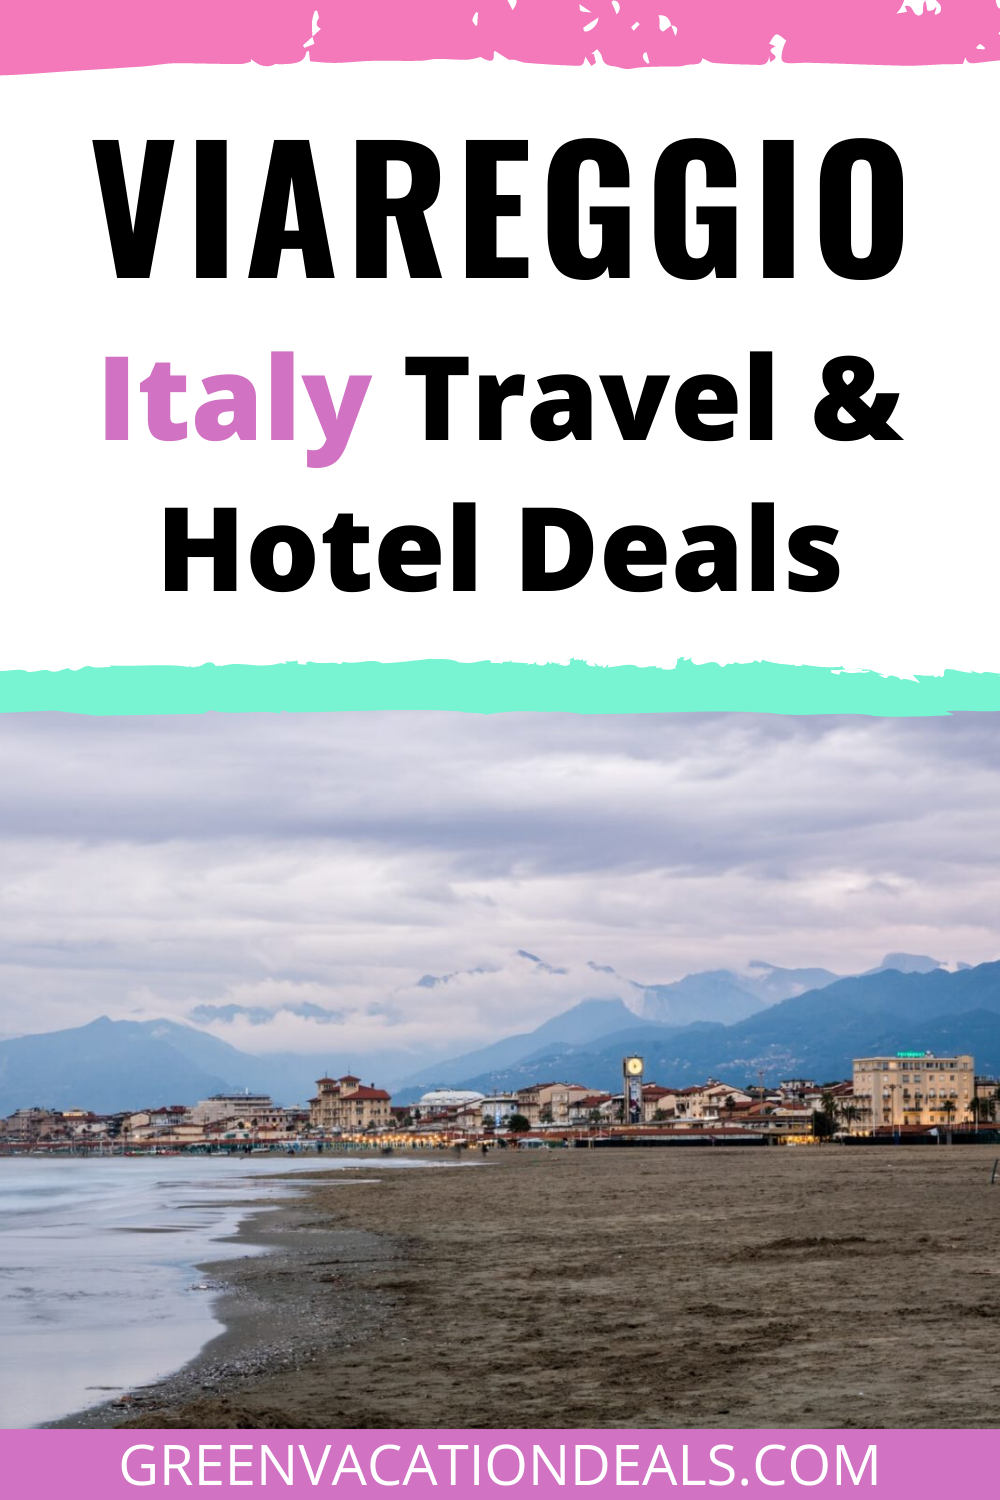 Viareggio, Italy travel sale. Discounted nightly rates. Up to 56% off hotels in Viareggio on the Tyrrhenian Sea. Enjoy the beautiful beaches in Tuscany, Italy, carnival, etc. #Viareggio #Italy #Italytravel #Italia #hoteldeals #traveldeals #HotelSale #TravelSale #Holiday #TravelHacks #beachtravel #beachholiday #beach #seafood #Tuscany #Tuscan #Tyrrhenian